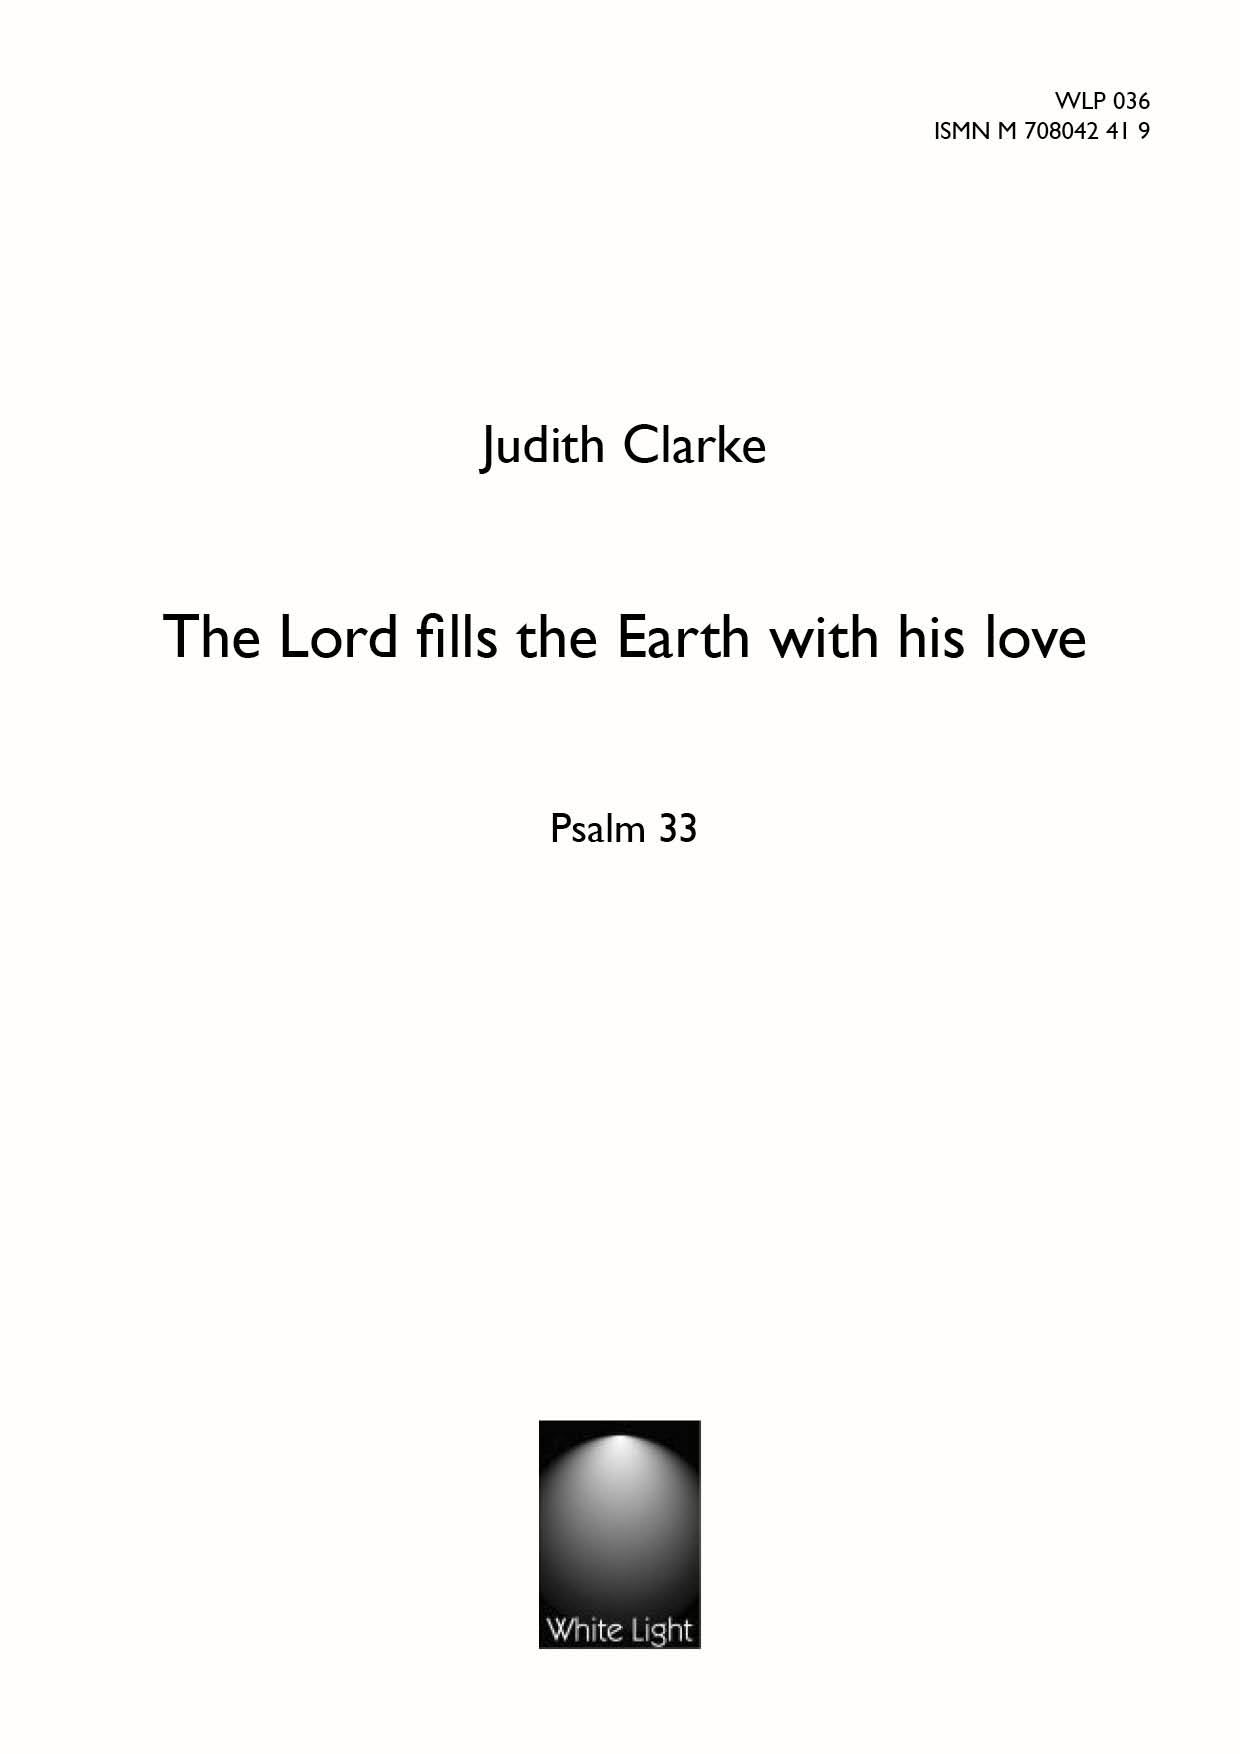 The lord fills the earth with his love